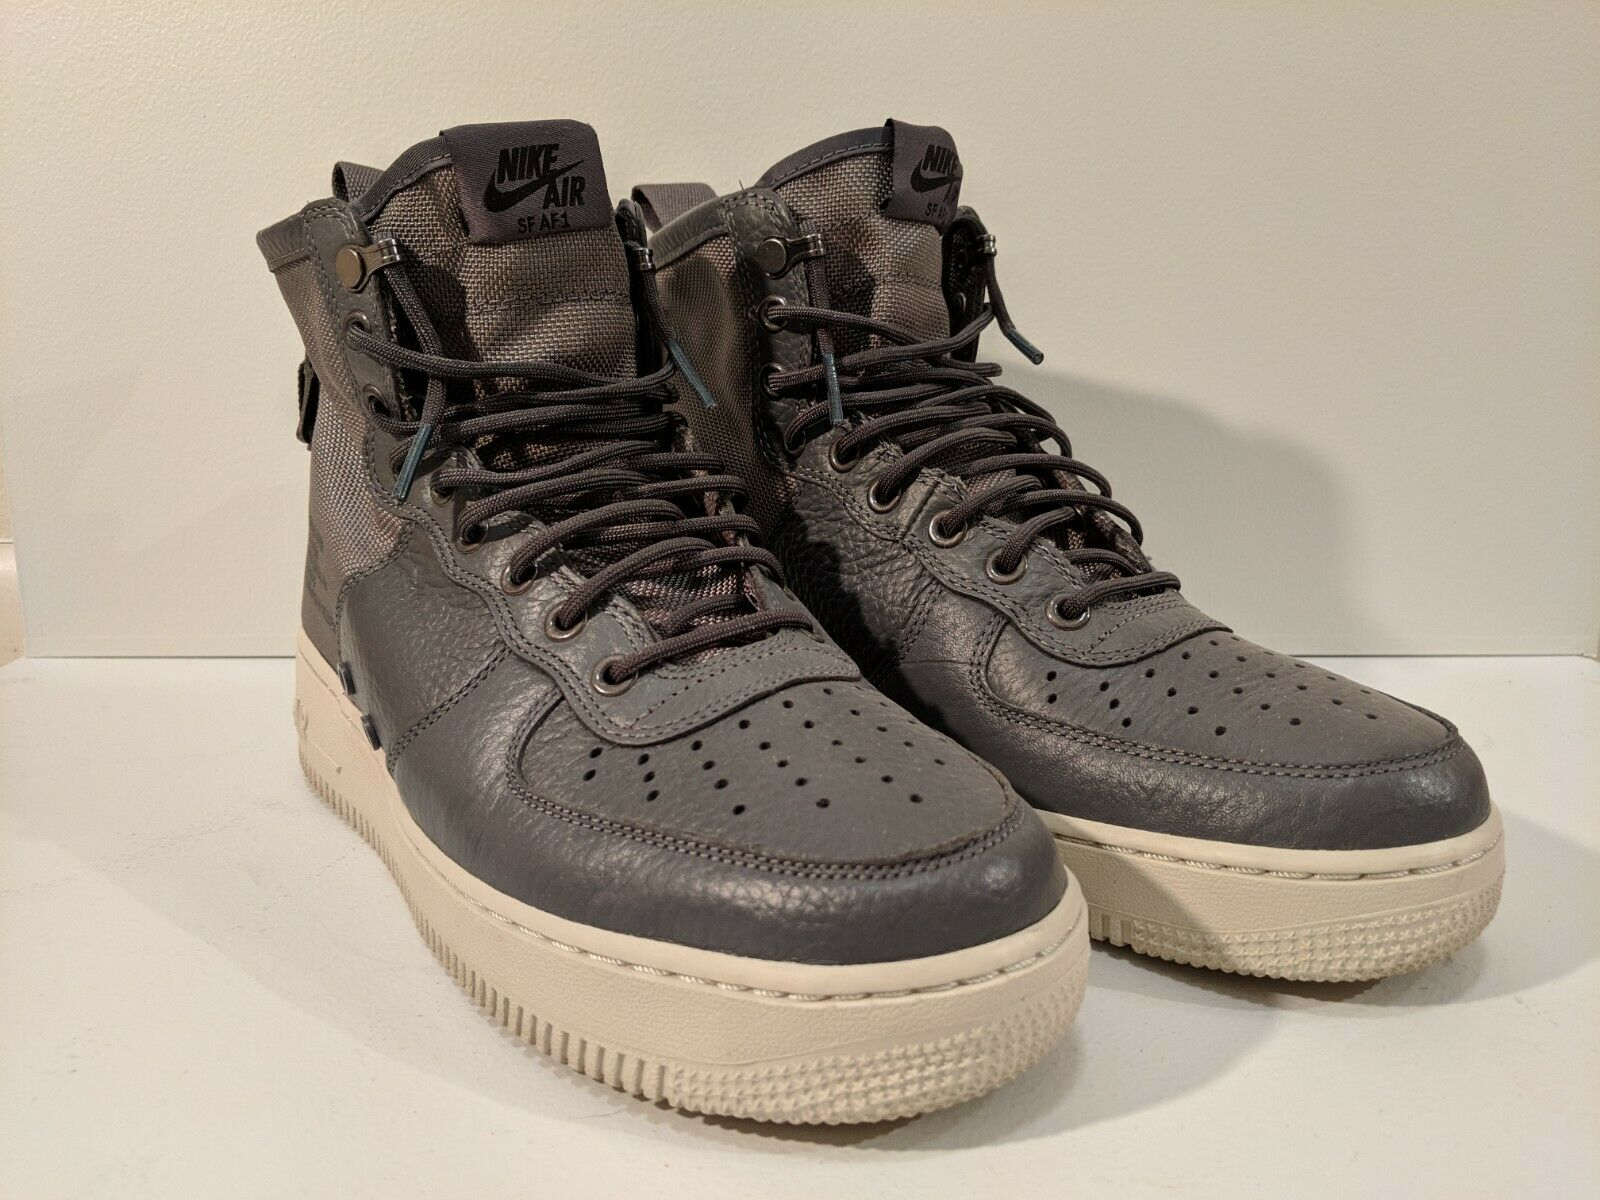 Nike SF AF1 Size 8.5 Grey Men's Mid Special Field Air Force 1 off white midsole